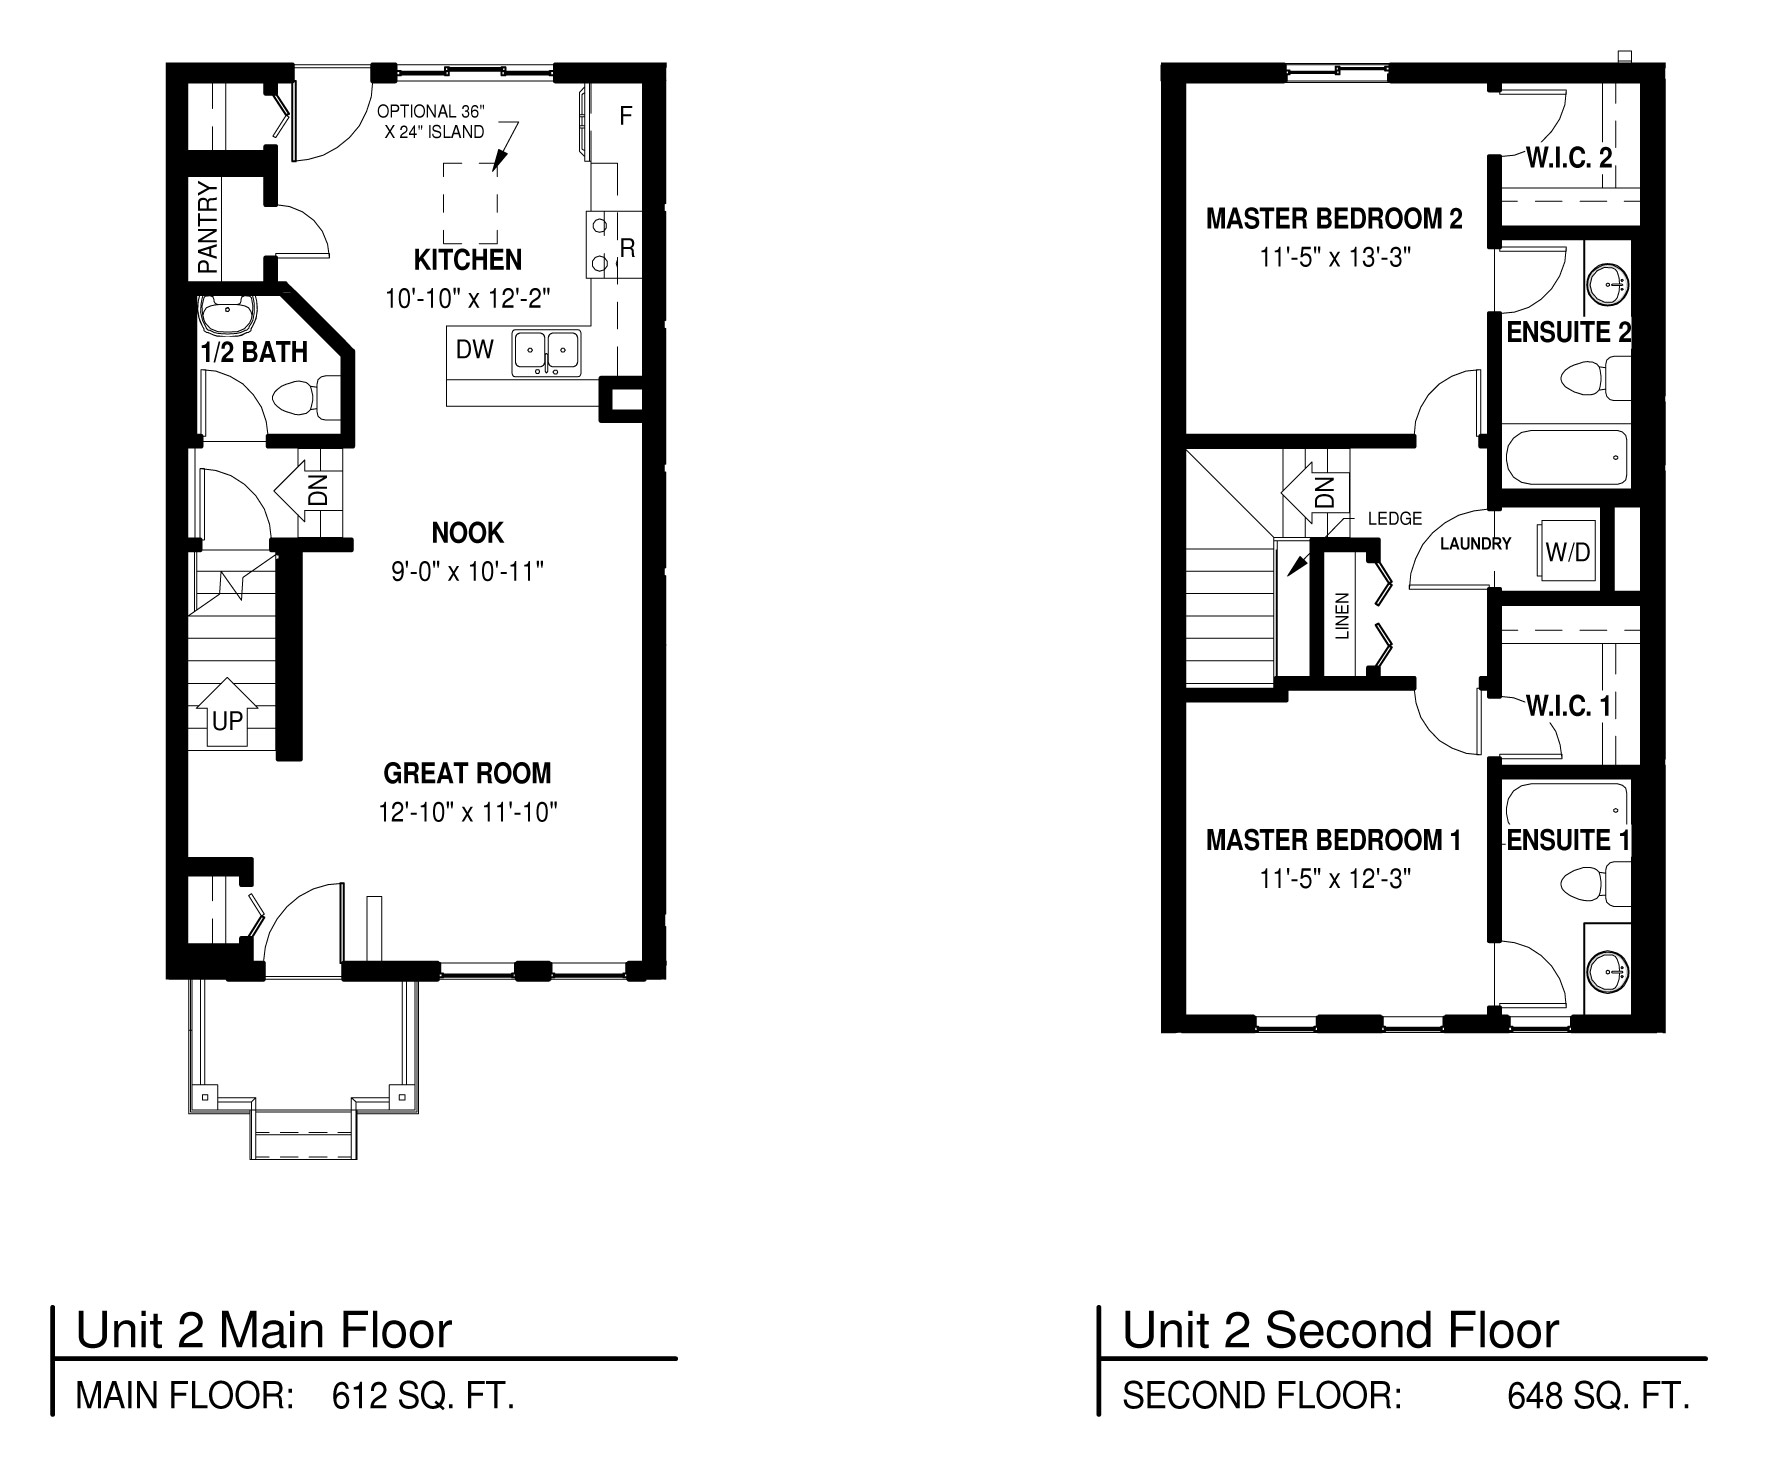 Outlook 2 Floorplan